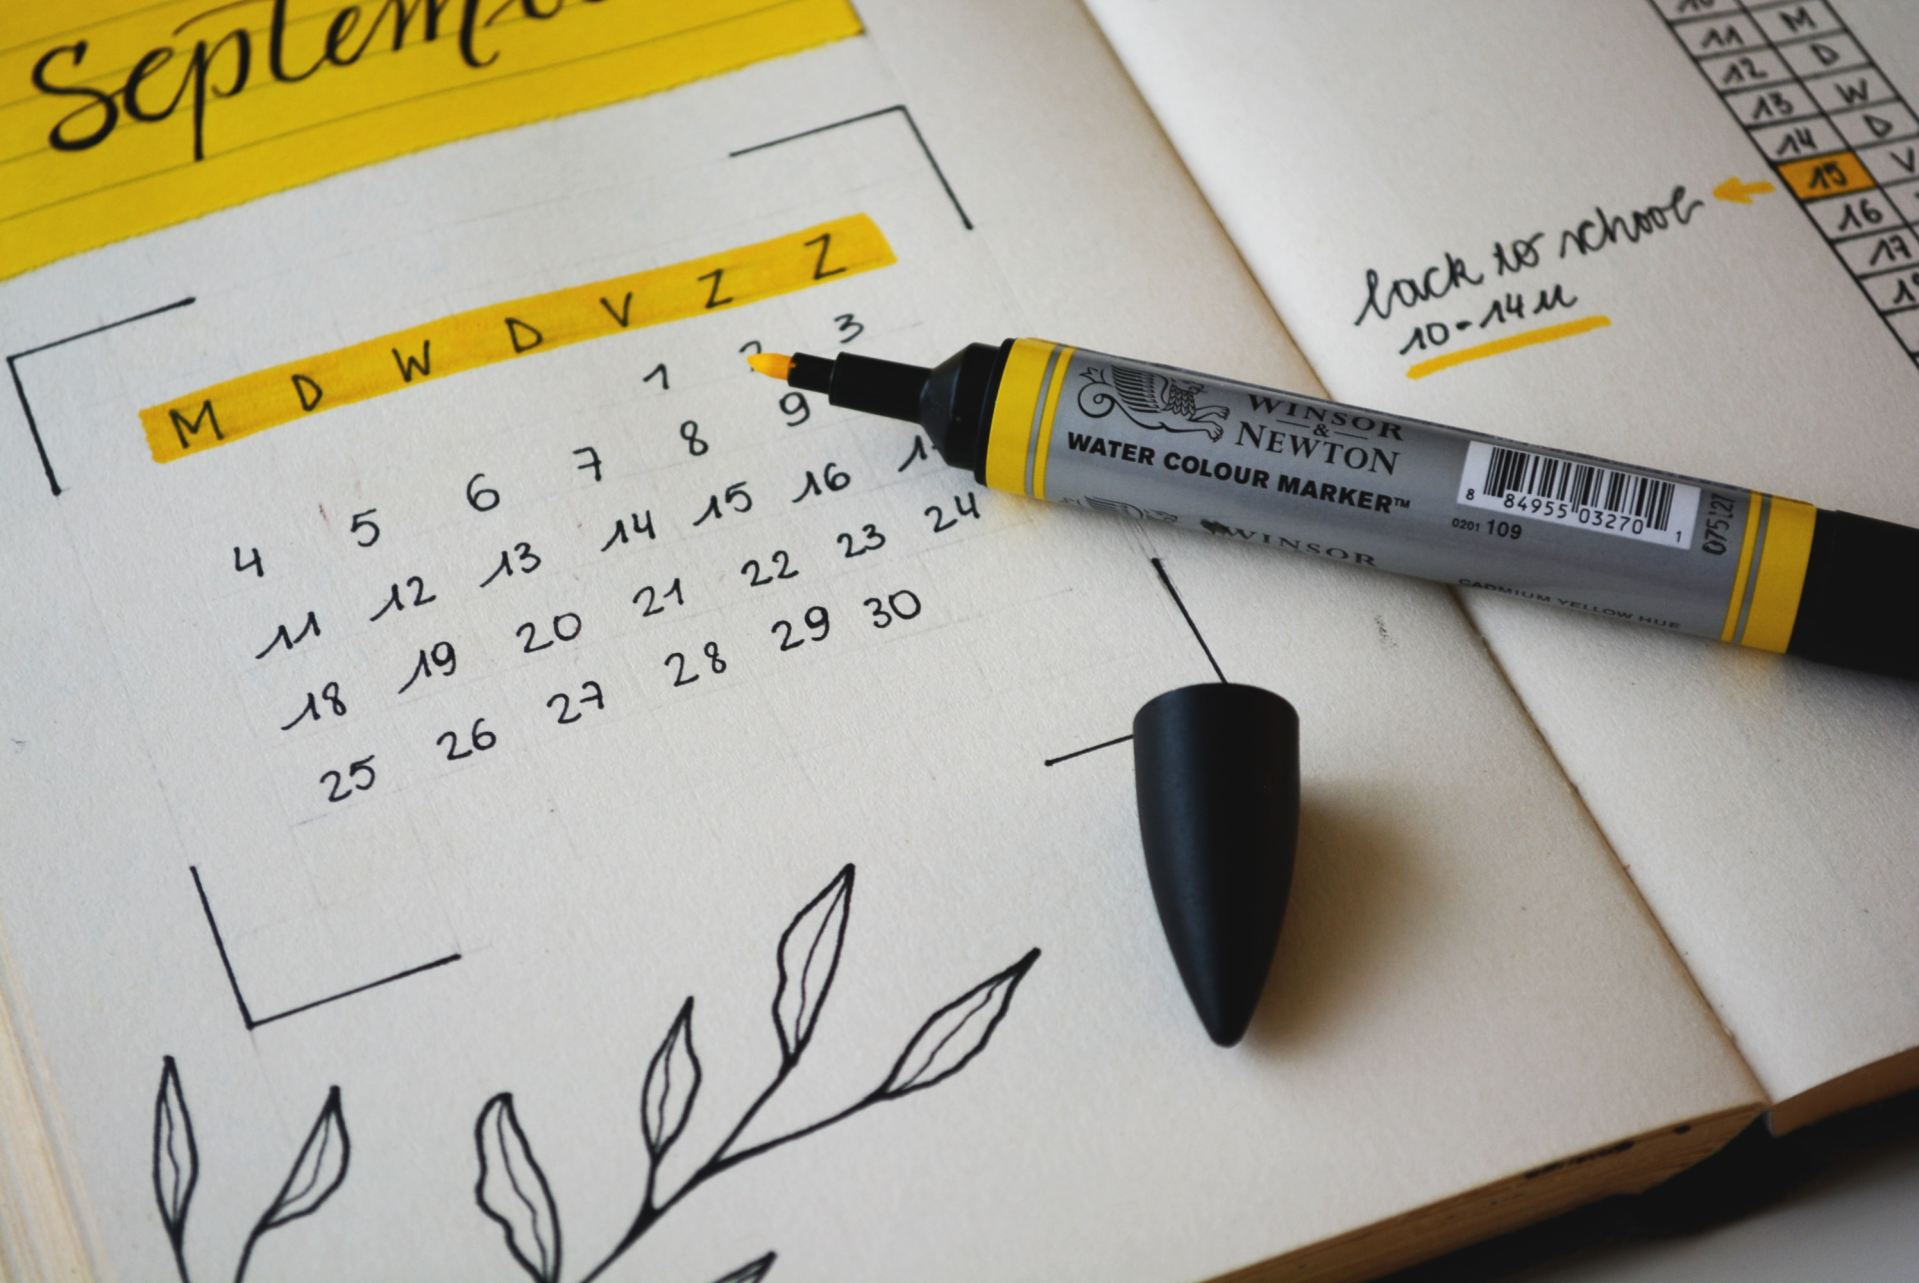 How to organise your day better? Finding life beyond the Google calendar